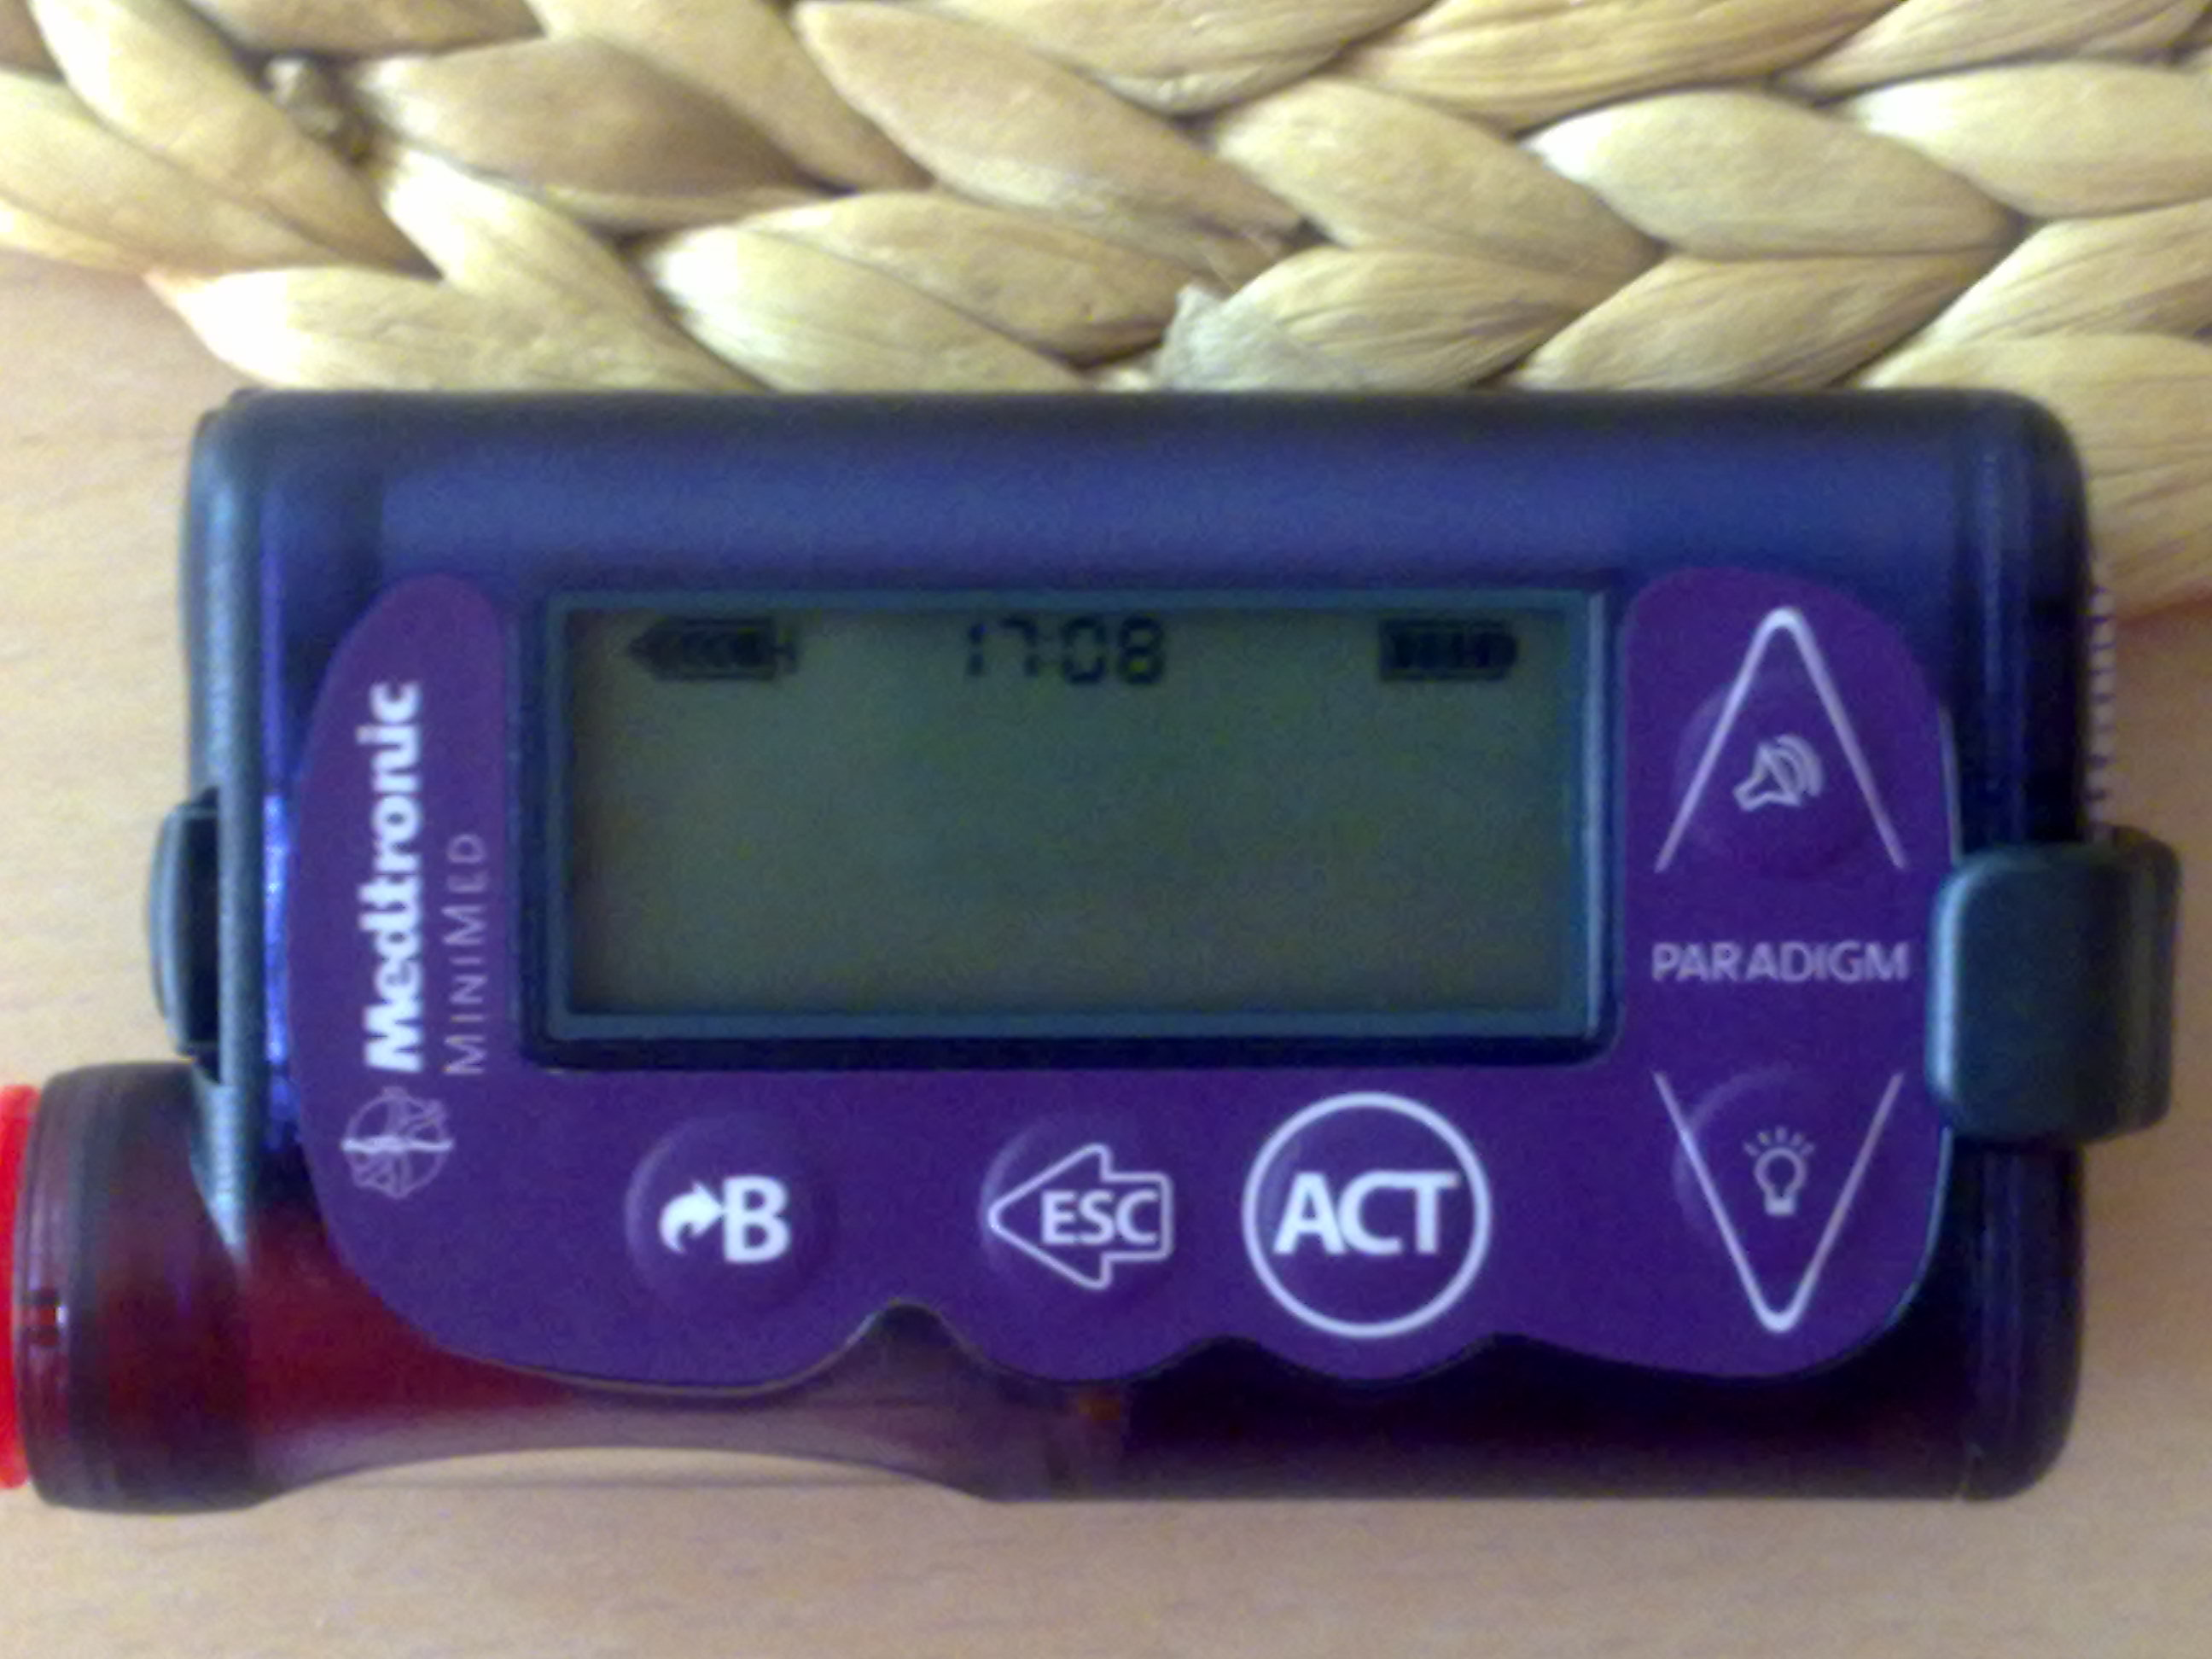 File:Insulin pump Medtronic Paradigm 754 jpg - Wikimedia Commons